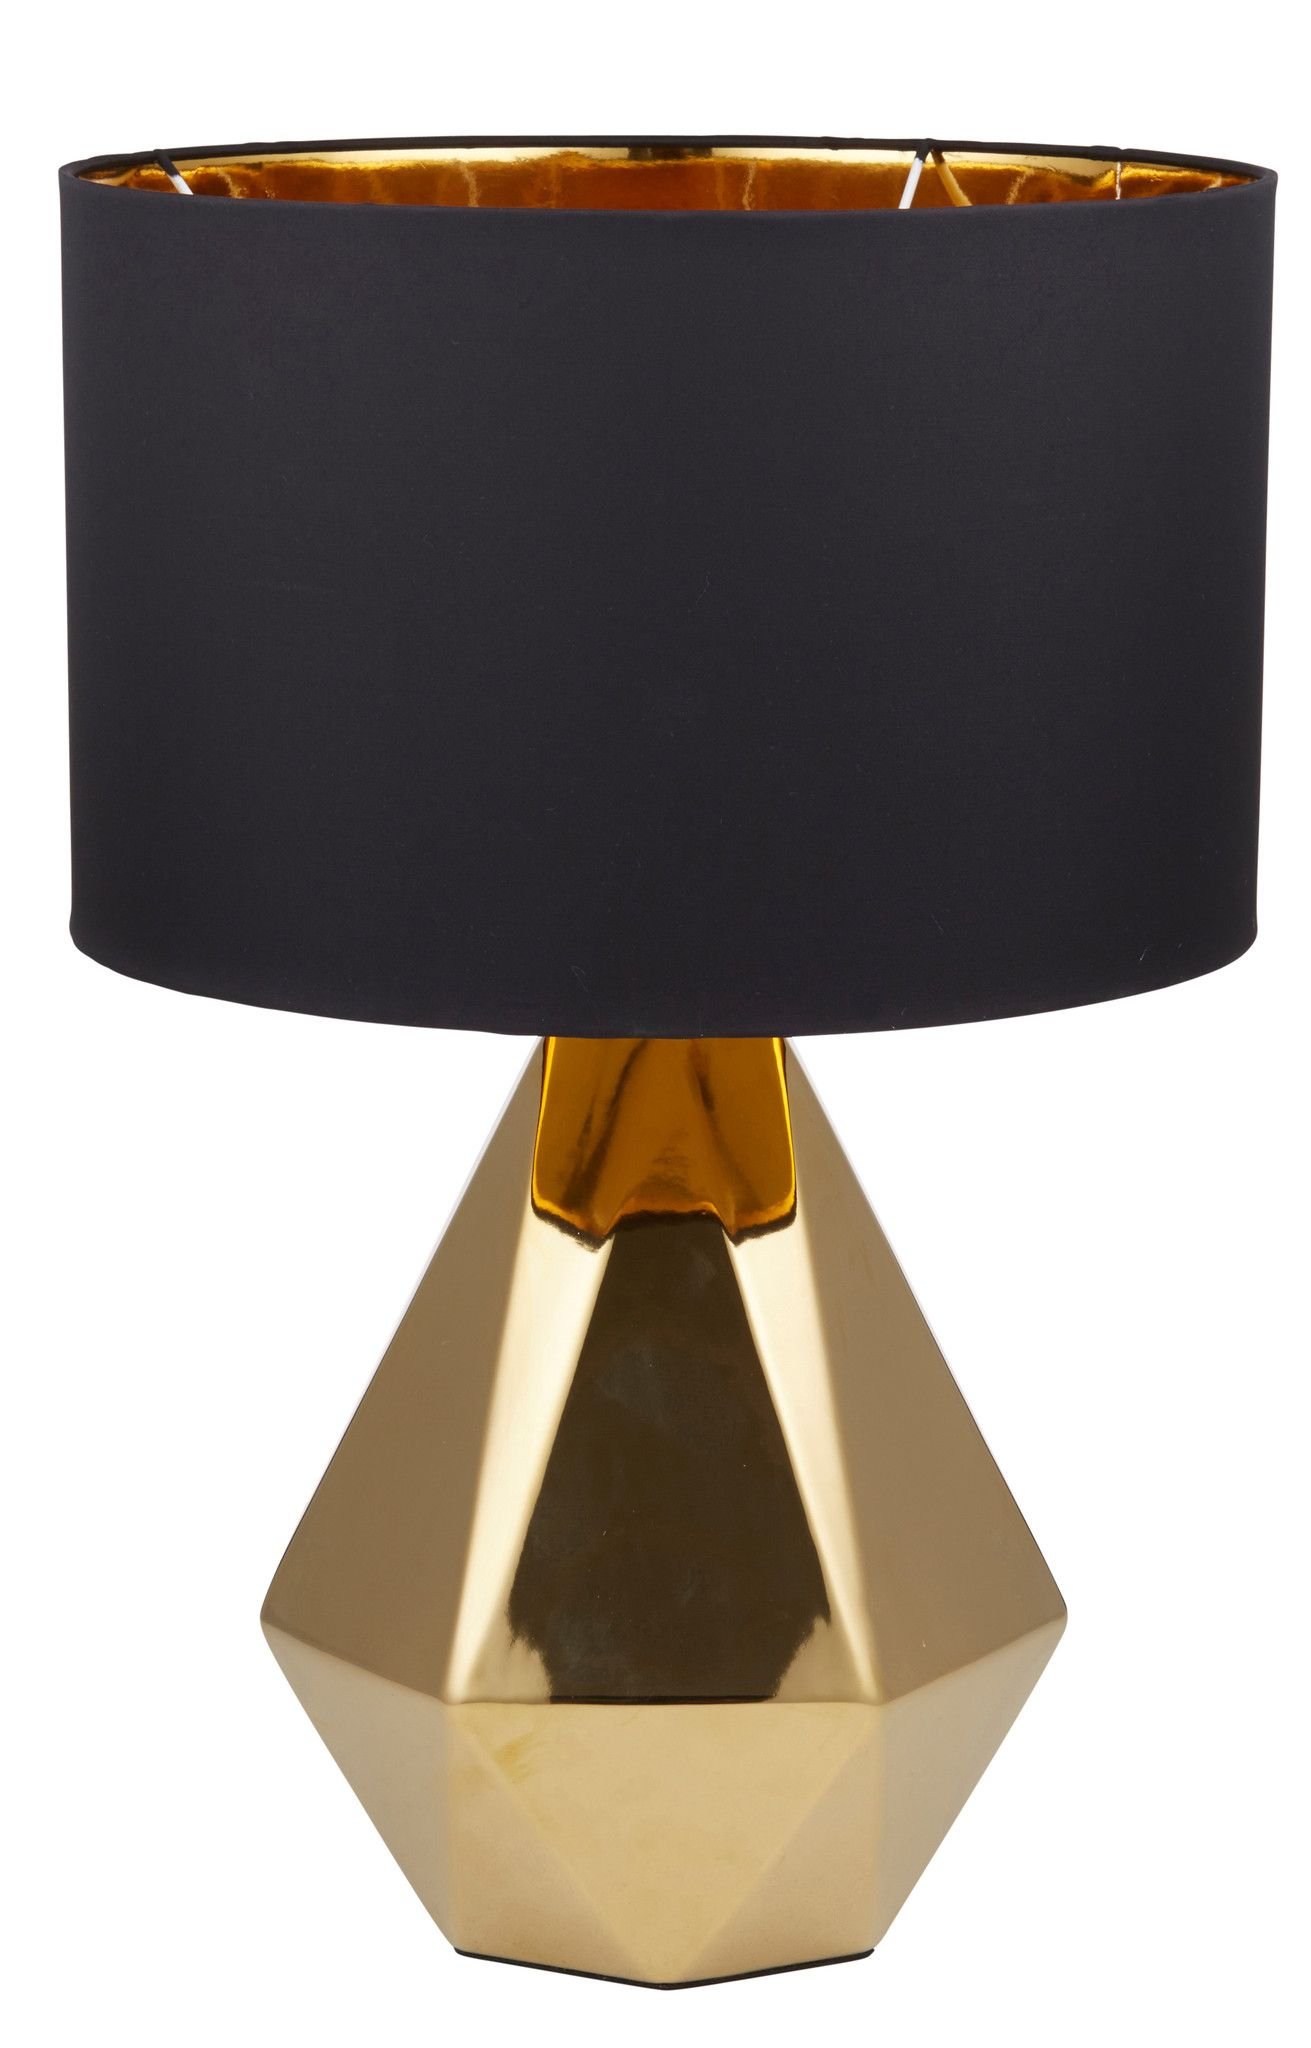 Cleo table lamp gold black lamp from coco leave a light on cleo table lamp gold black lamp from coco geotapseo Gallery